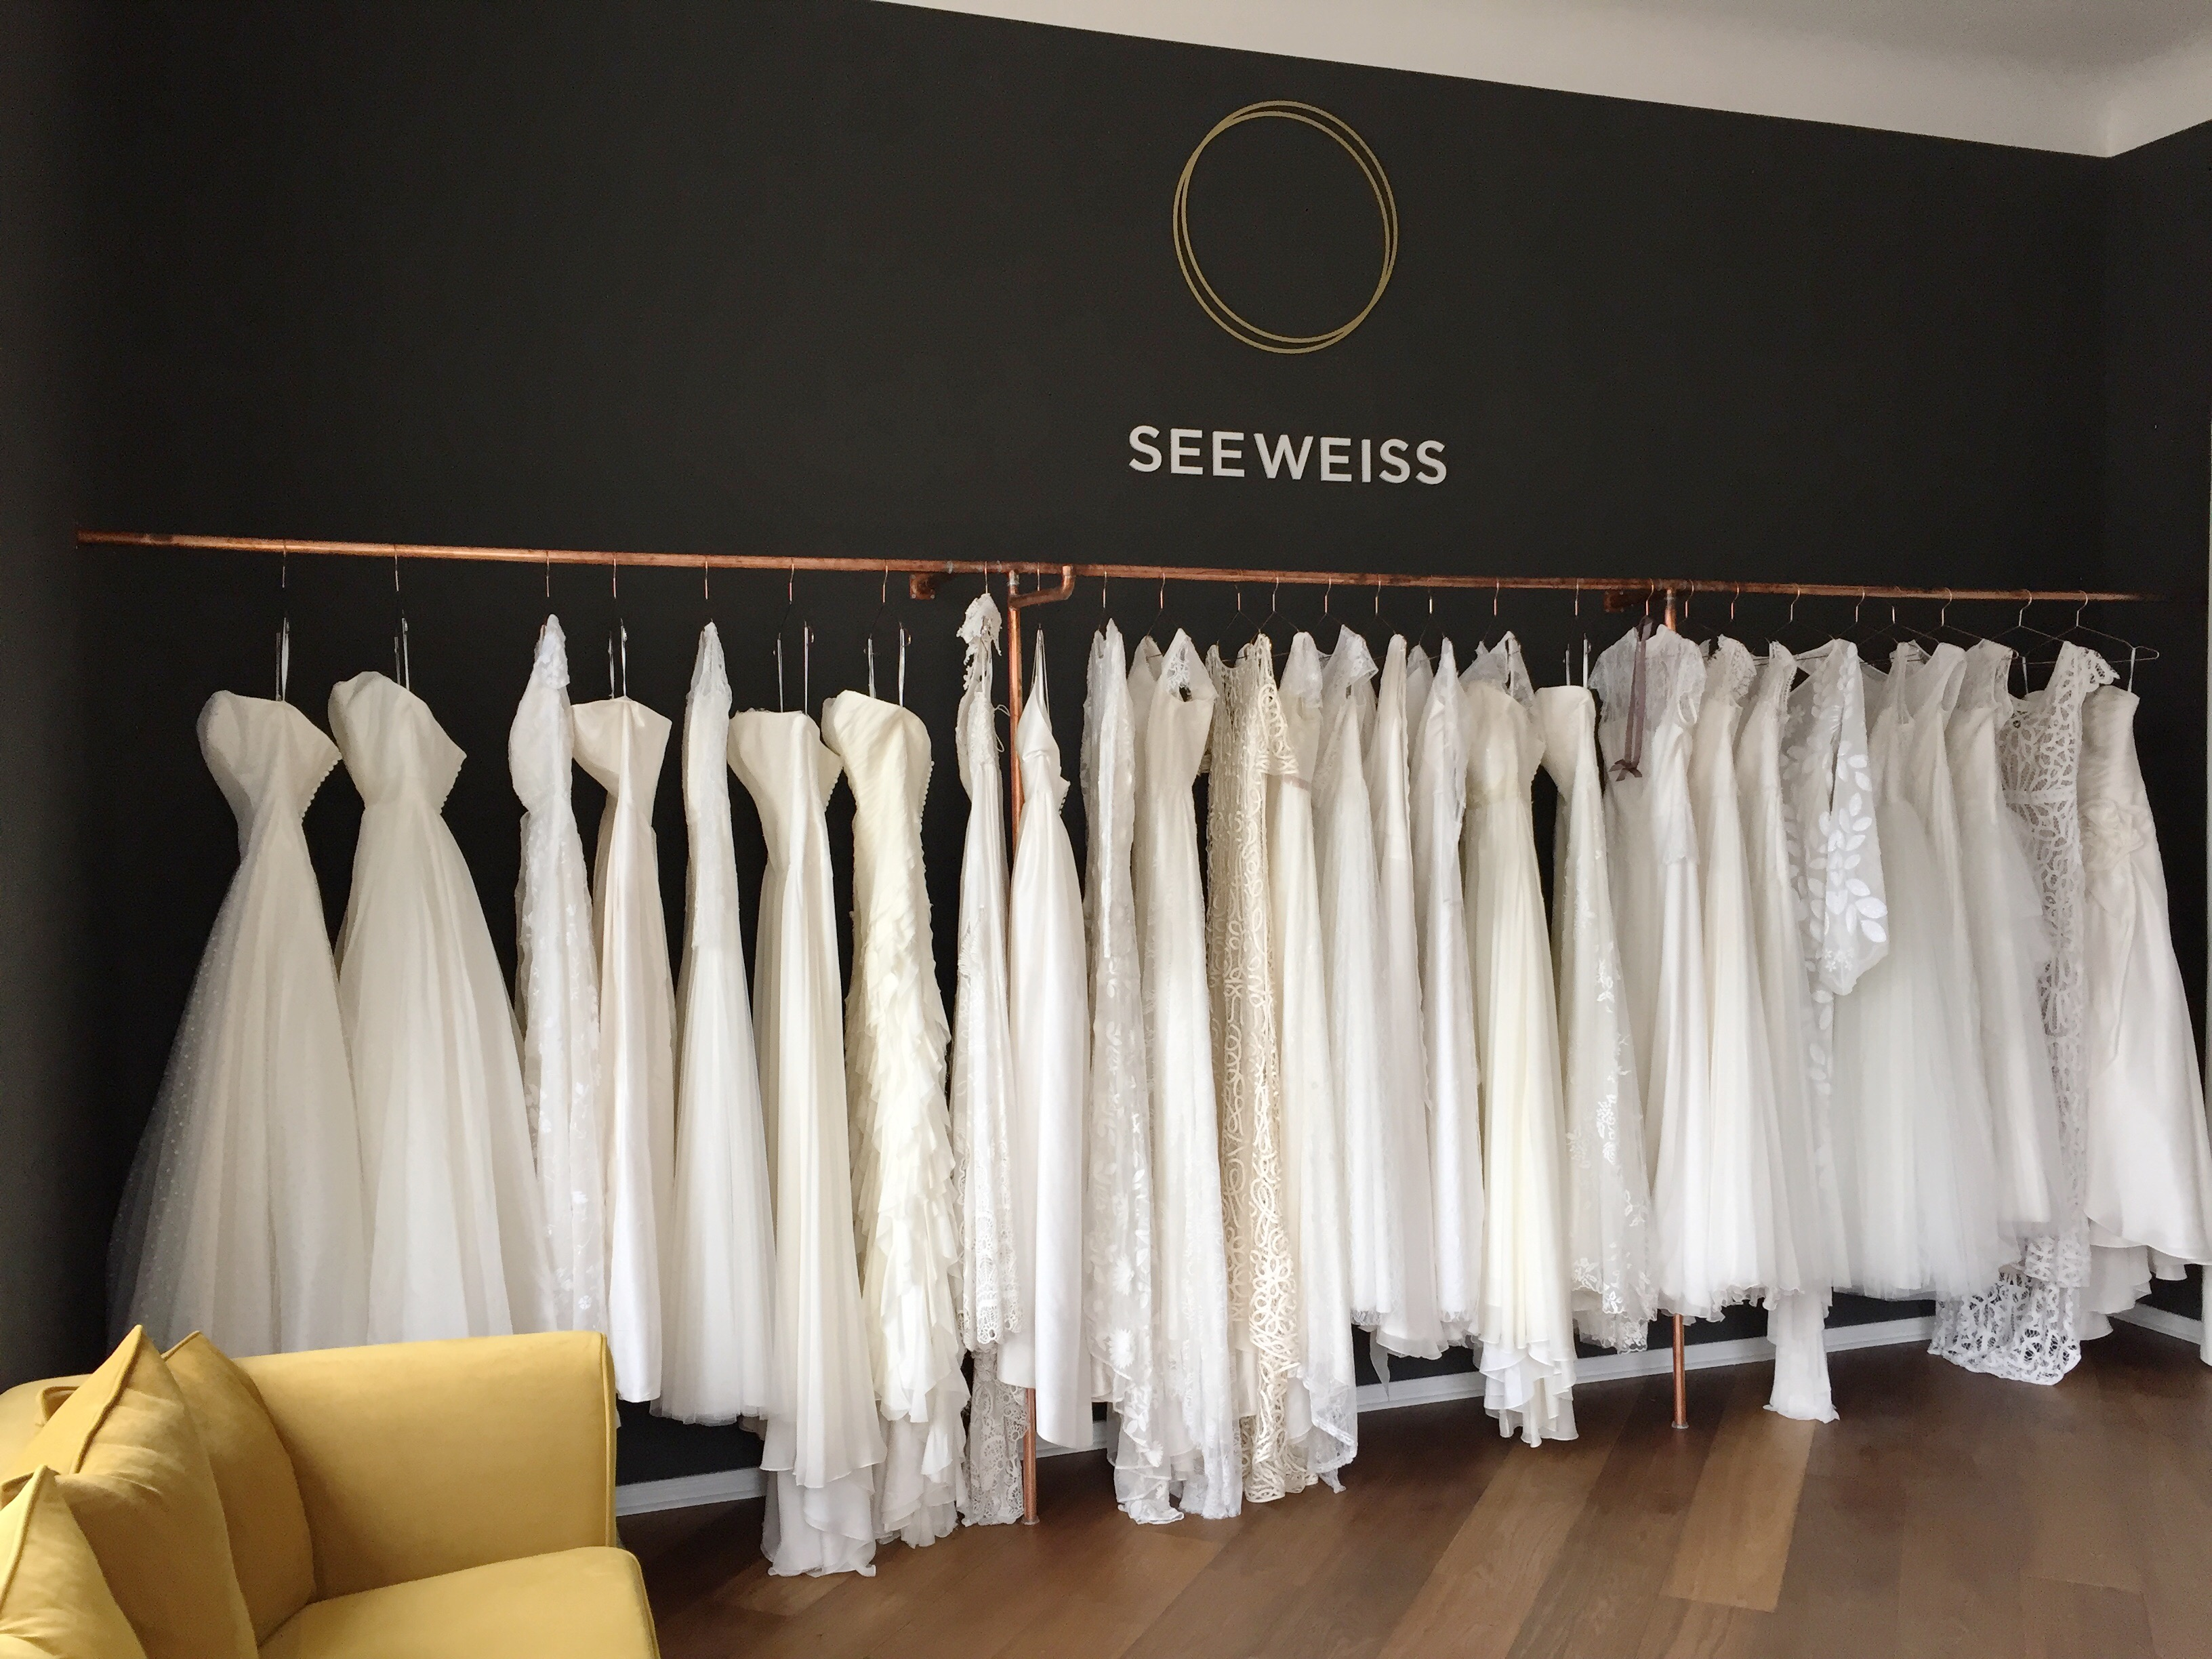 WE WELCOME SEEWEISS TO OUR JUVELAN FAMILY seeweiss anna kara rue de seine bridal jewellery braut schmuck brautschmuck bridalgown bridaldress brautkleid braut2016 braut2017 wedding hochzeit armband halskette ohrringe earrings necklace bracelet pearls perlen